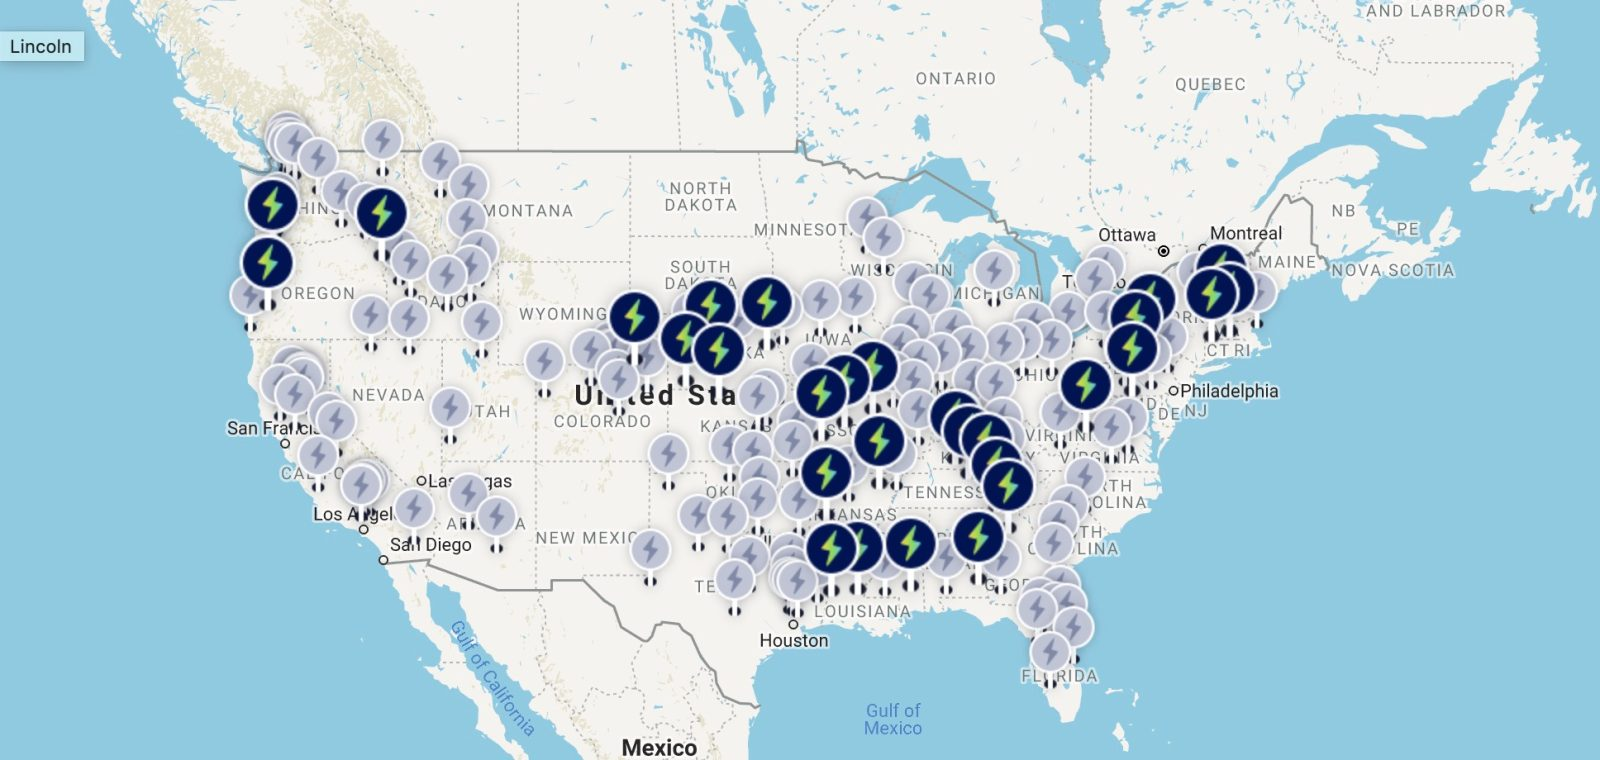 Electrify America Already Has 30 Fast Charging Stations Online